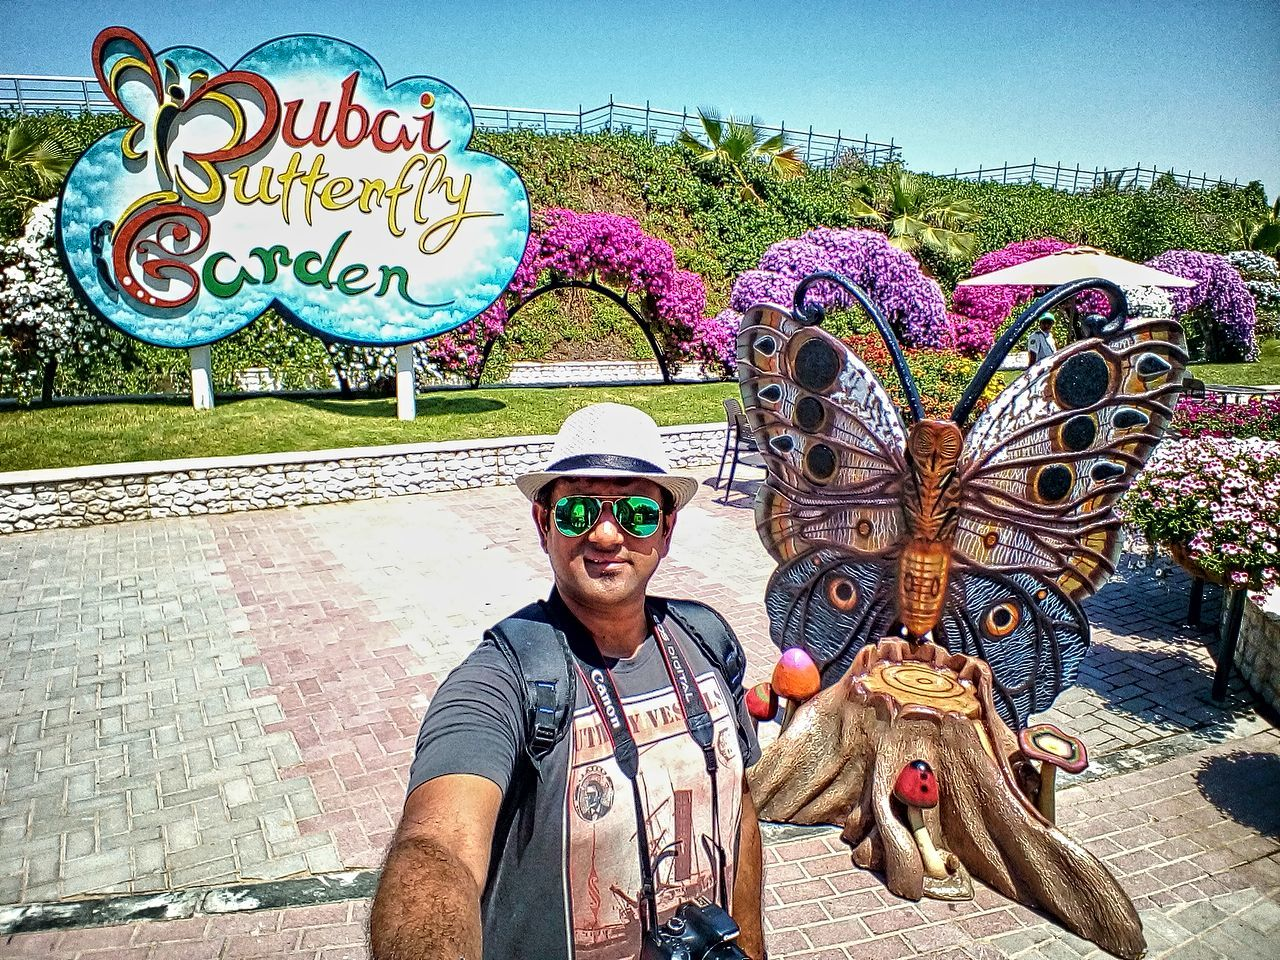 Photo of Dubai Butterfly Garden - Dubai - United Arab Emirates By Prady Das (InstaPrady)